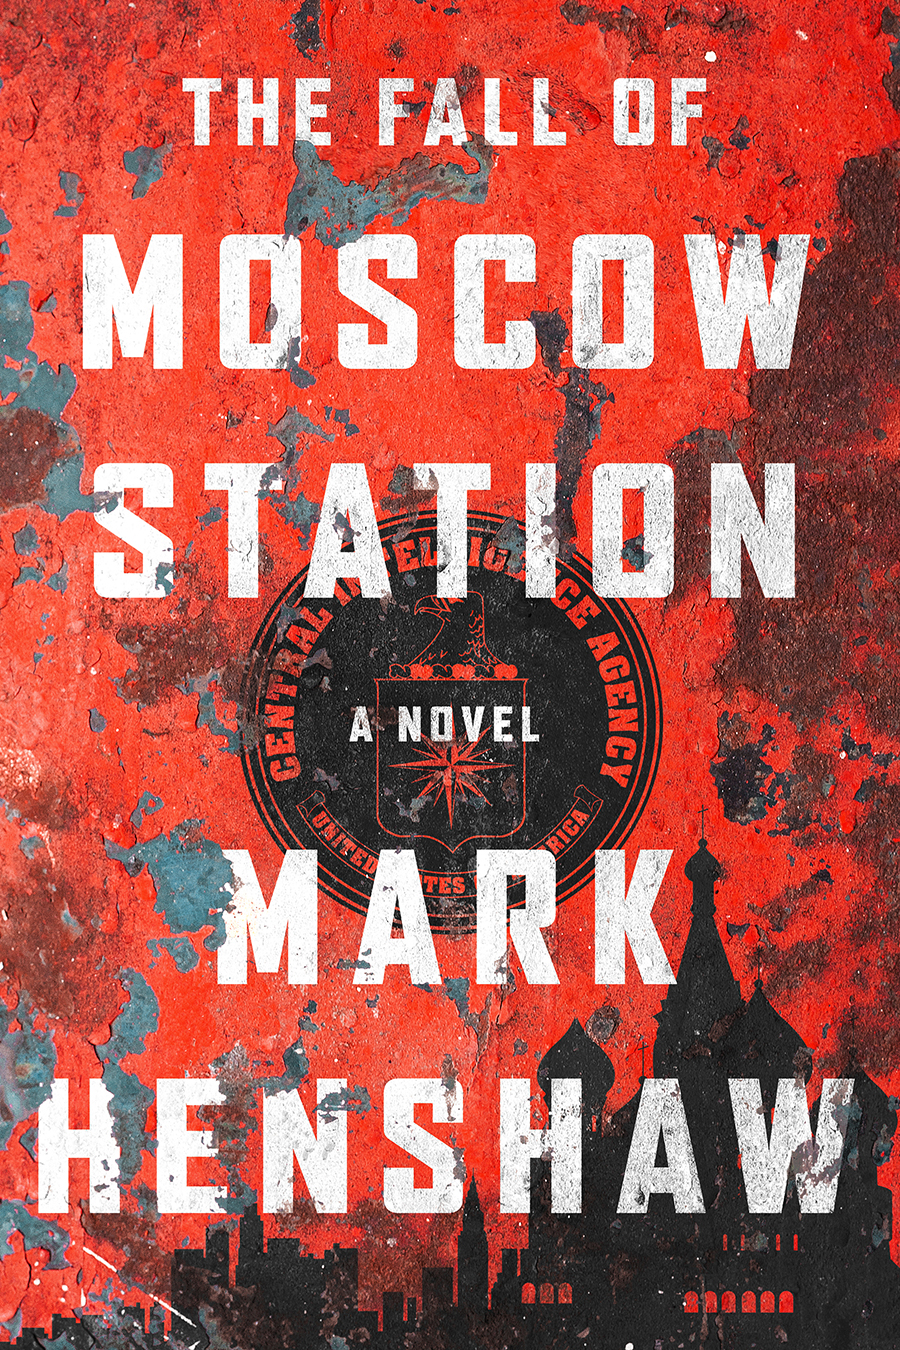 Click  here  to pre-order  The Fall of Moscow Station  on Amazon.